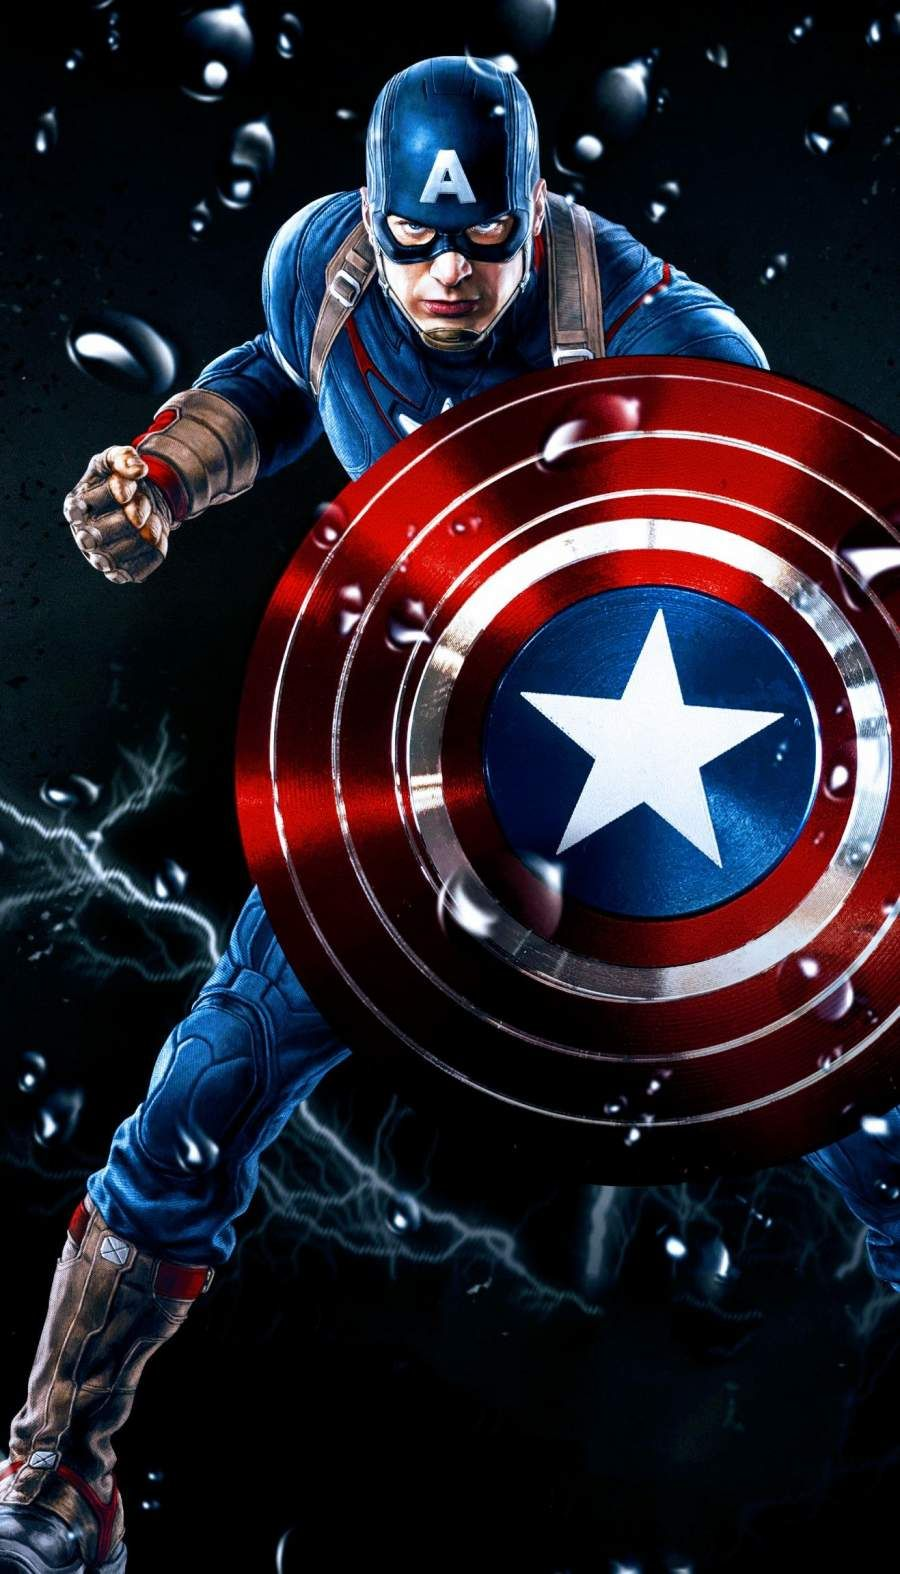 Captain America The Avenger Iphone Wallpaper Fotos Do Capitao America Capitao America Capitao America Quadrinhos